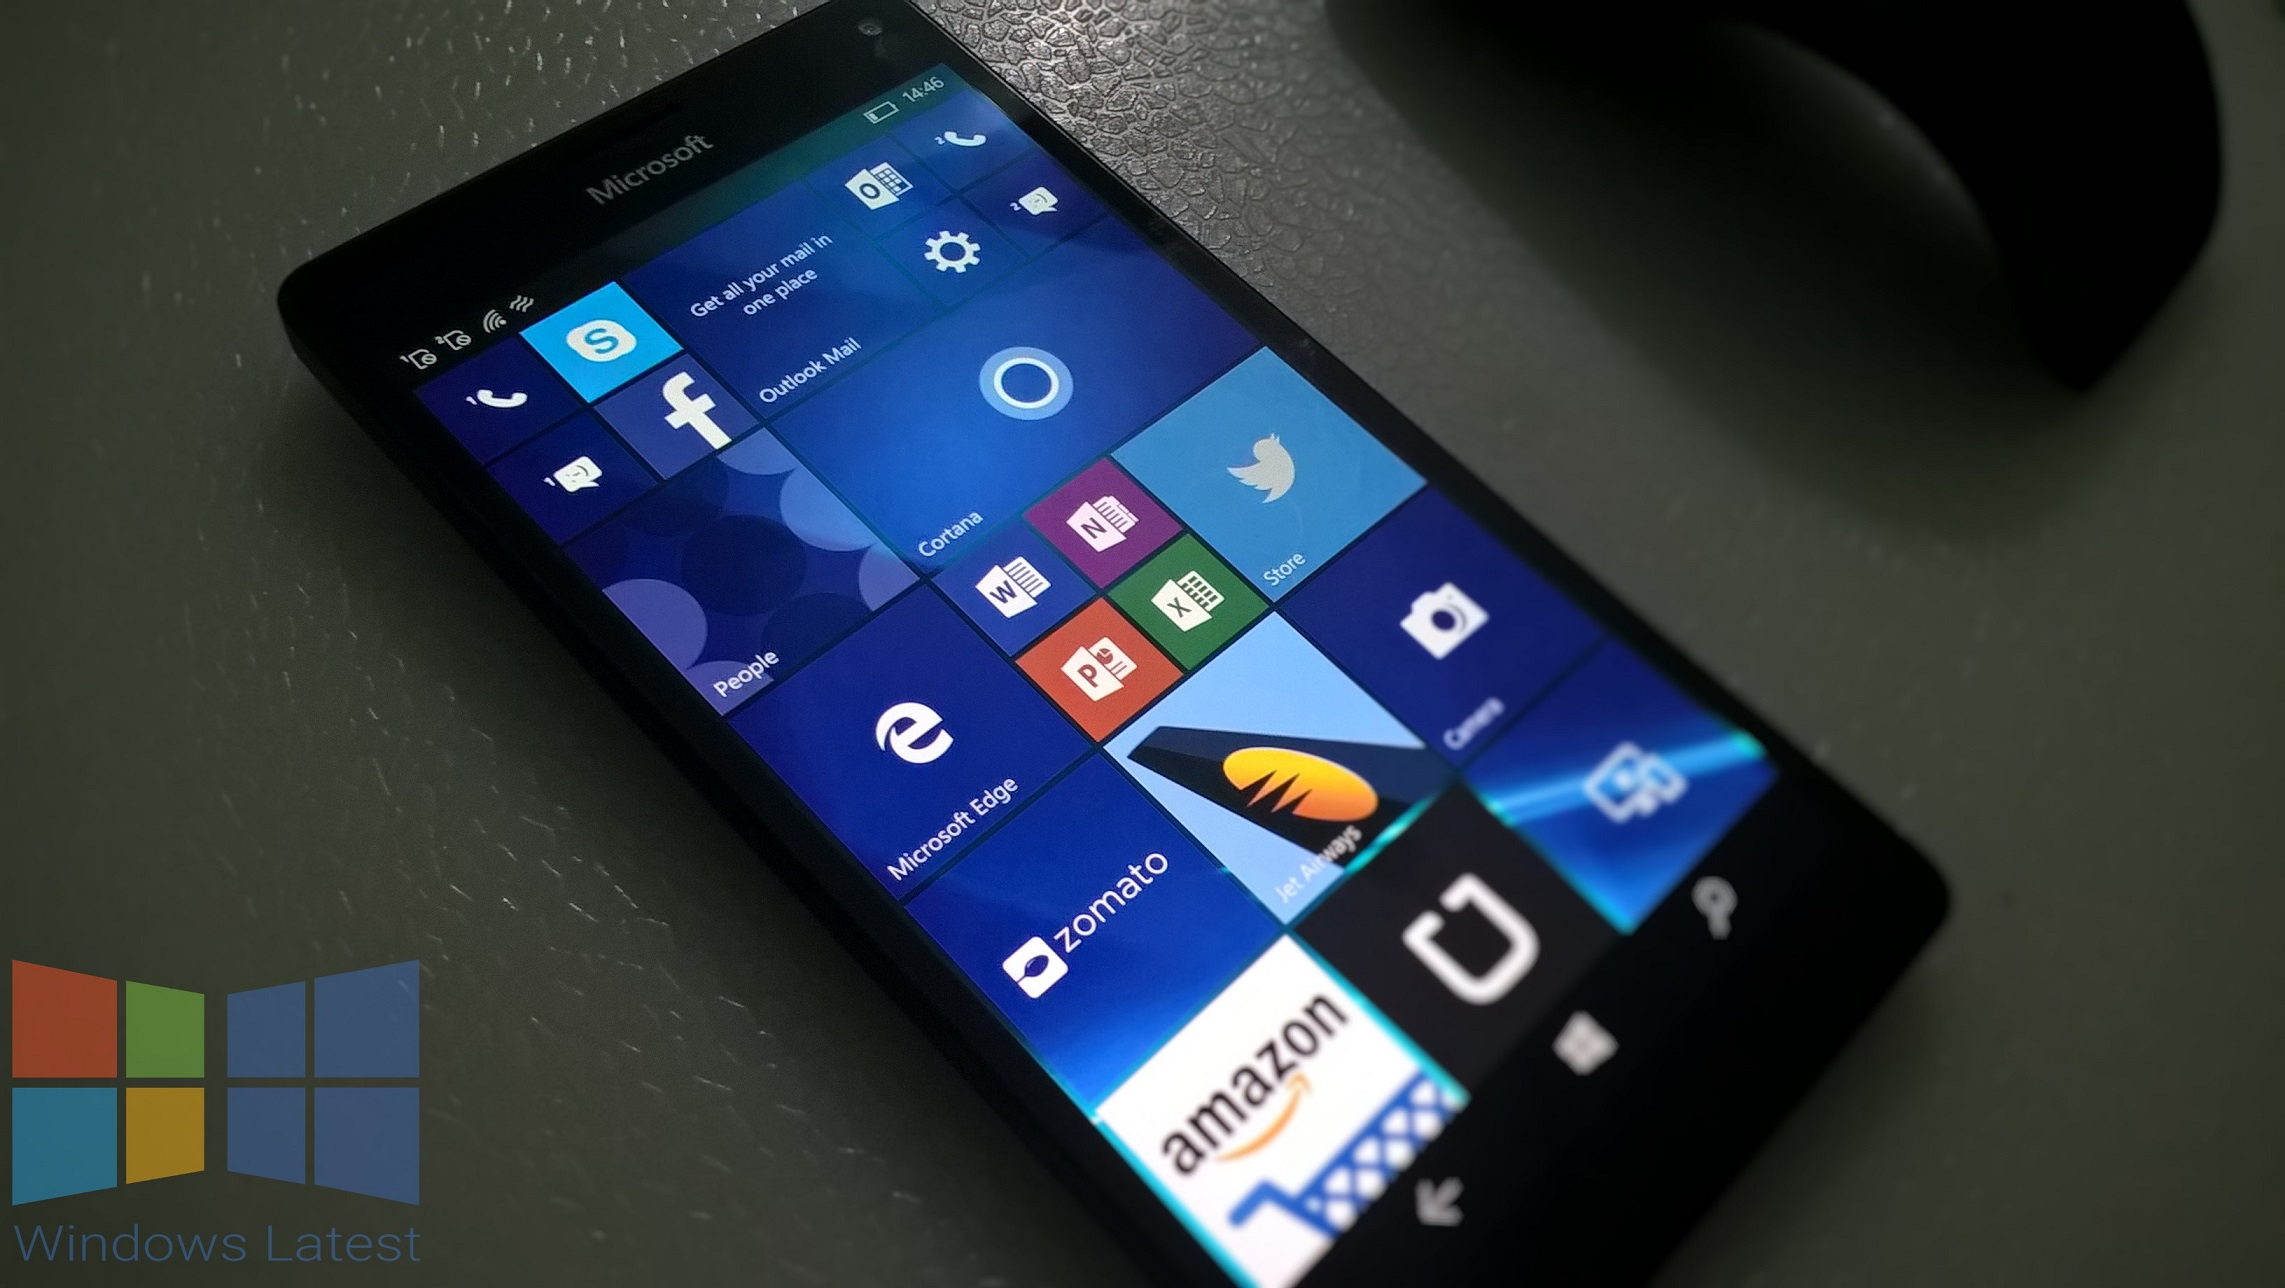 Windows 10 Mobile Build 10586 318 Is Now Under Testing